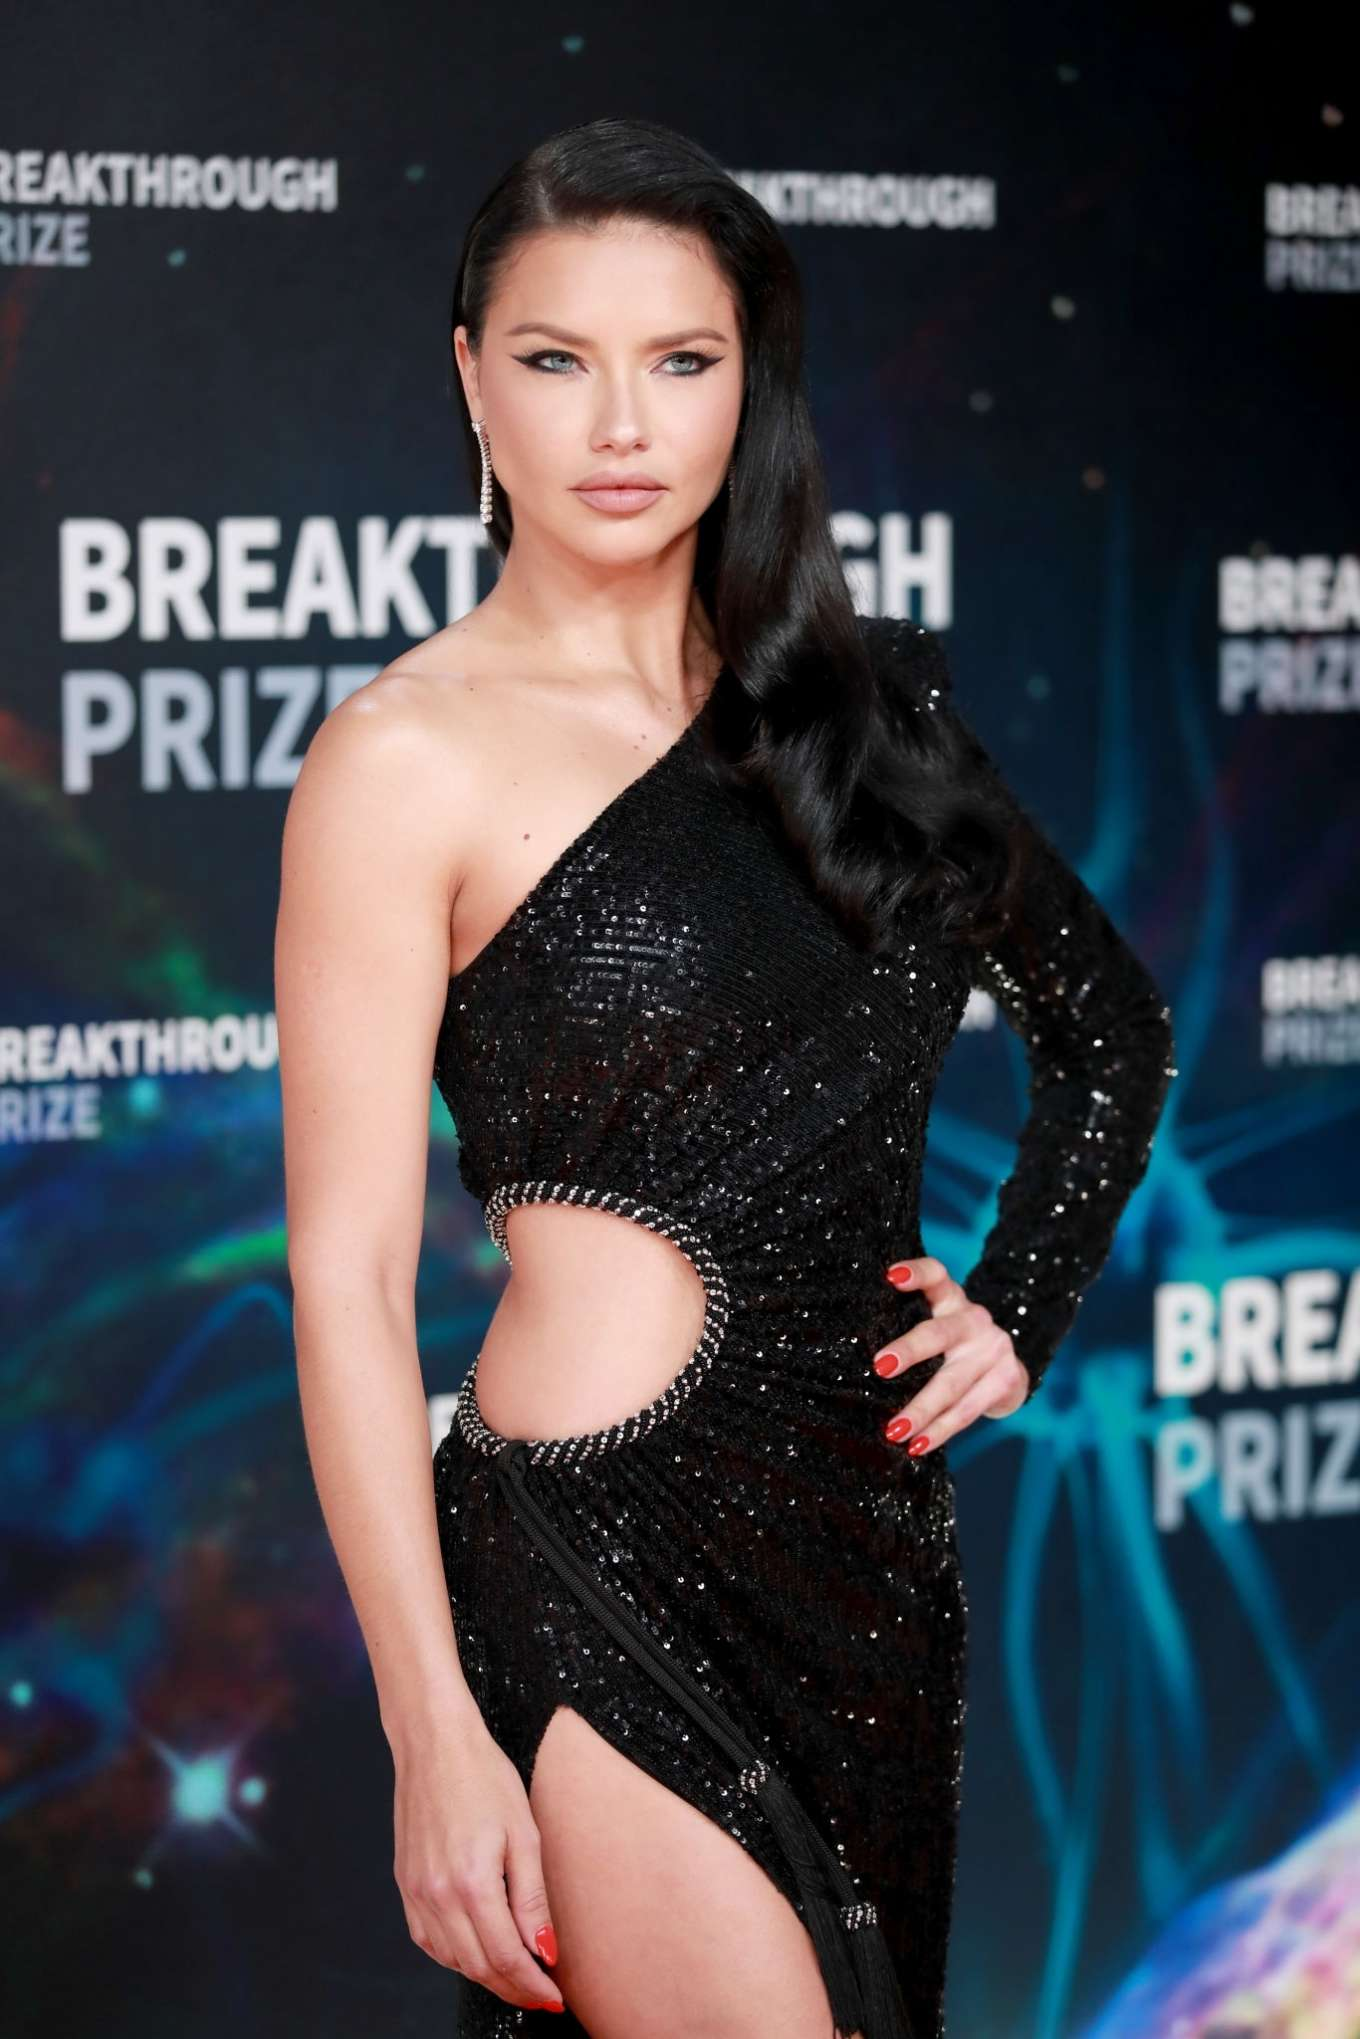 Adriana Lima - 8th Annual Breakthrough Prize Ceremony in Mountain View